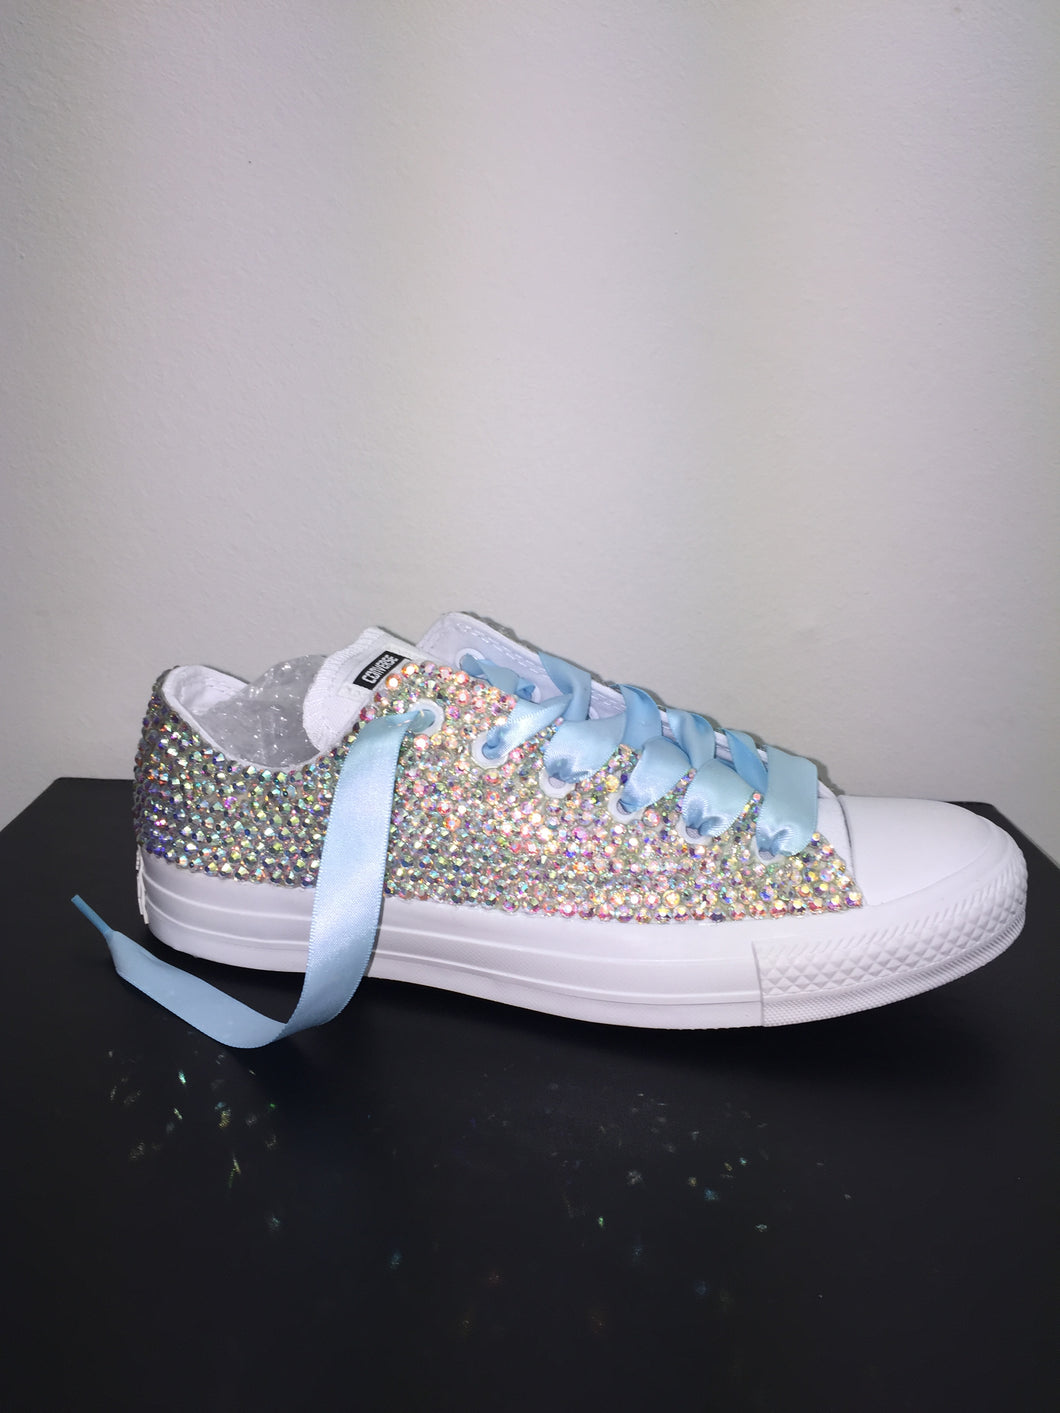 52cffb02e1b8 ... All Star Mono White Converse With Crystal AB Diamonds With Baby Blue  Ribbon Lace Combo ...